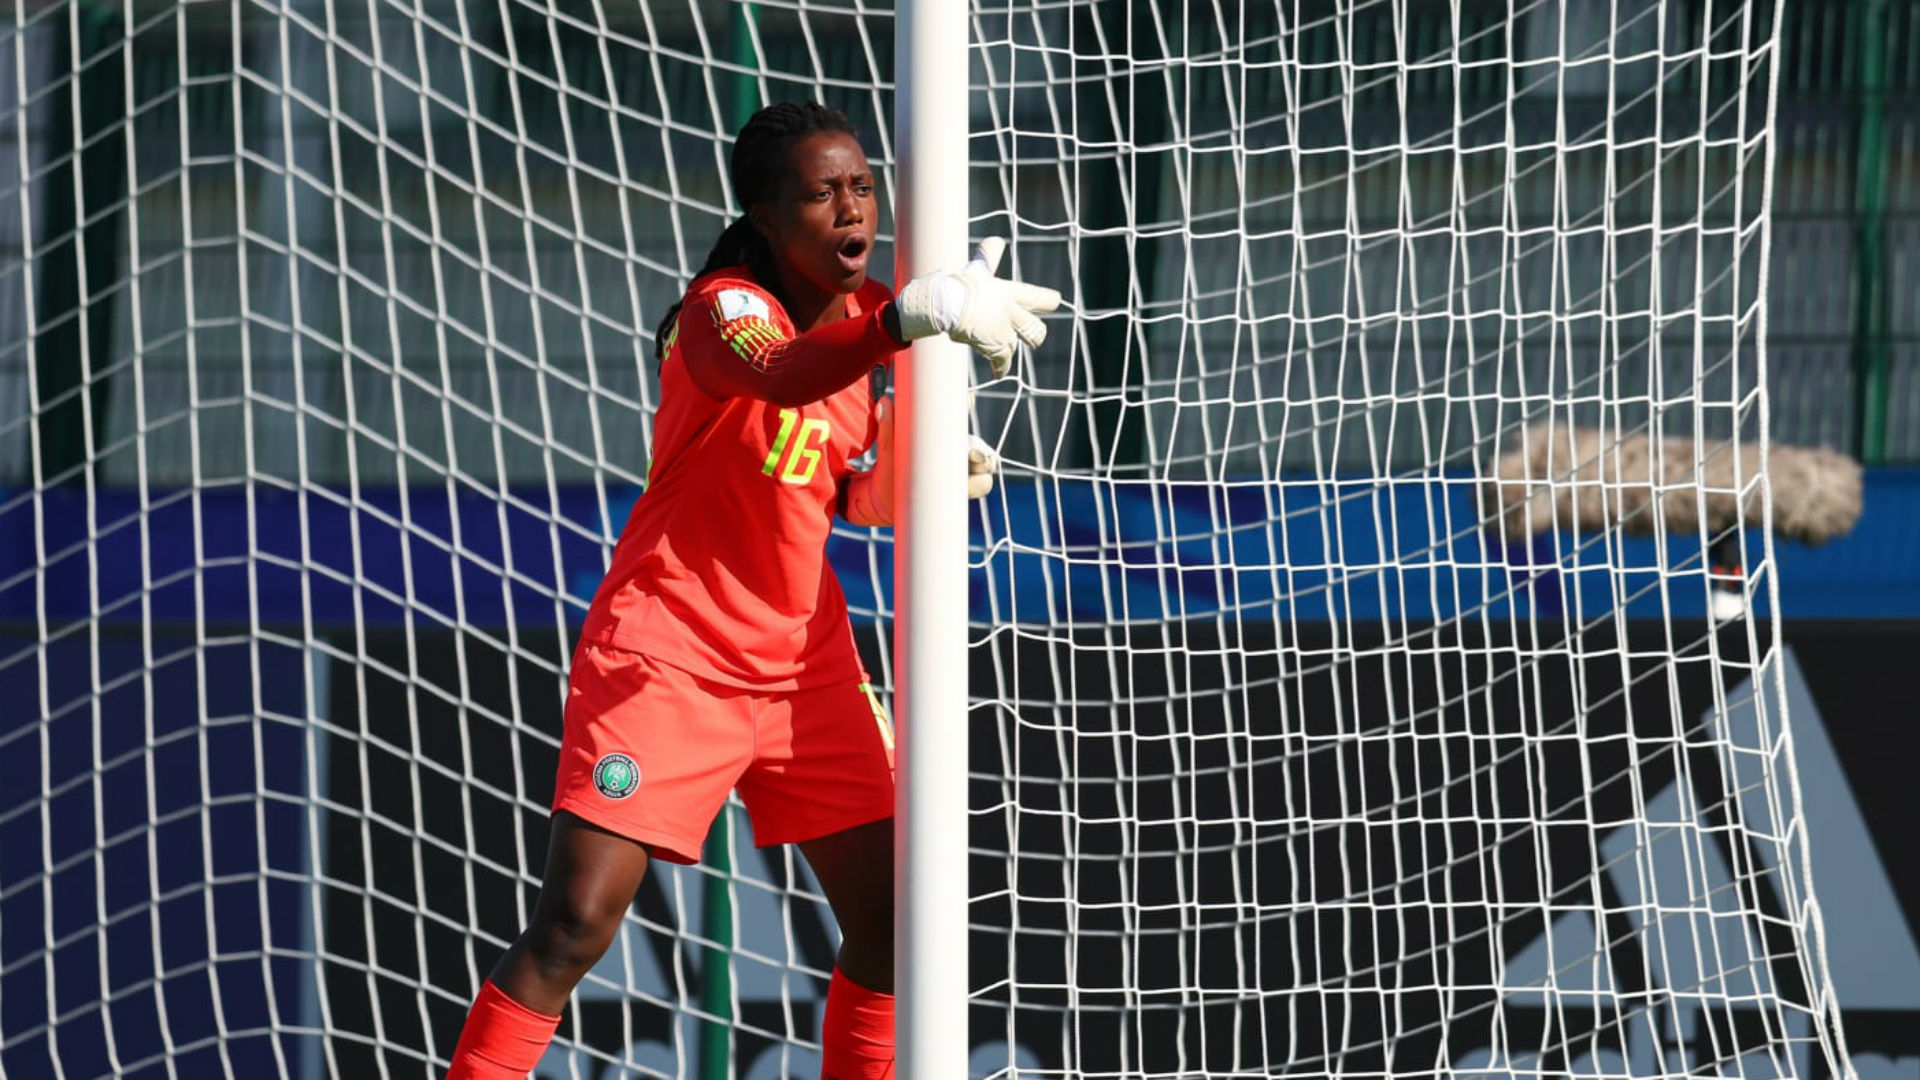 'I never started as goalkeeper' - Women's World Cup record holder Nnadozie